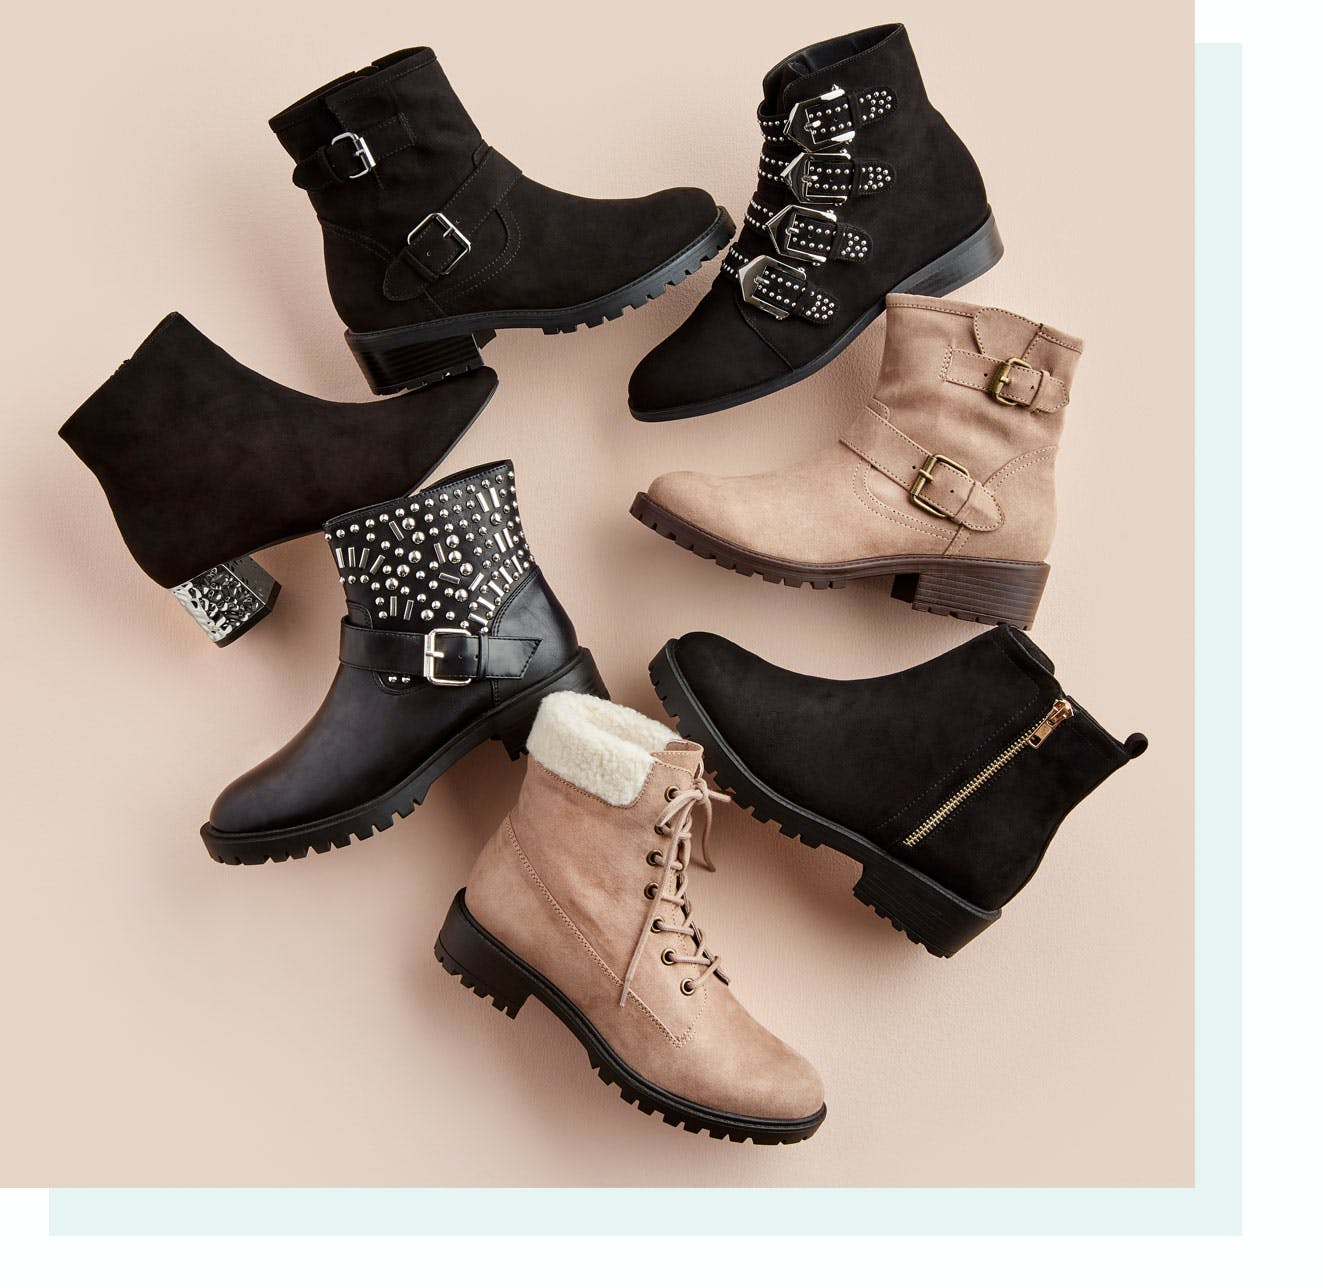 Ankle Boots Buying Guide - Trends